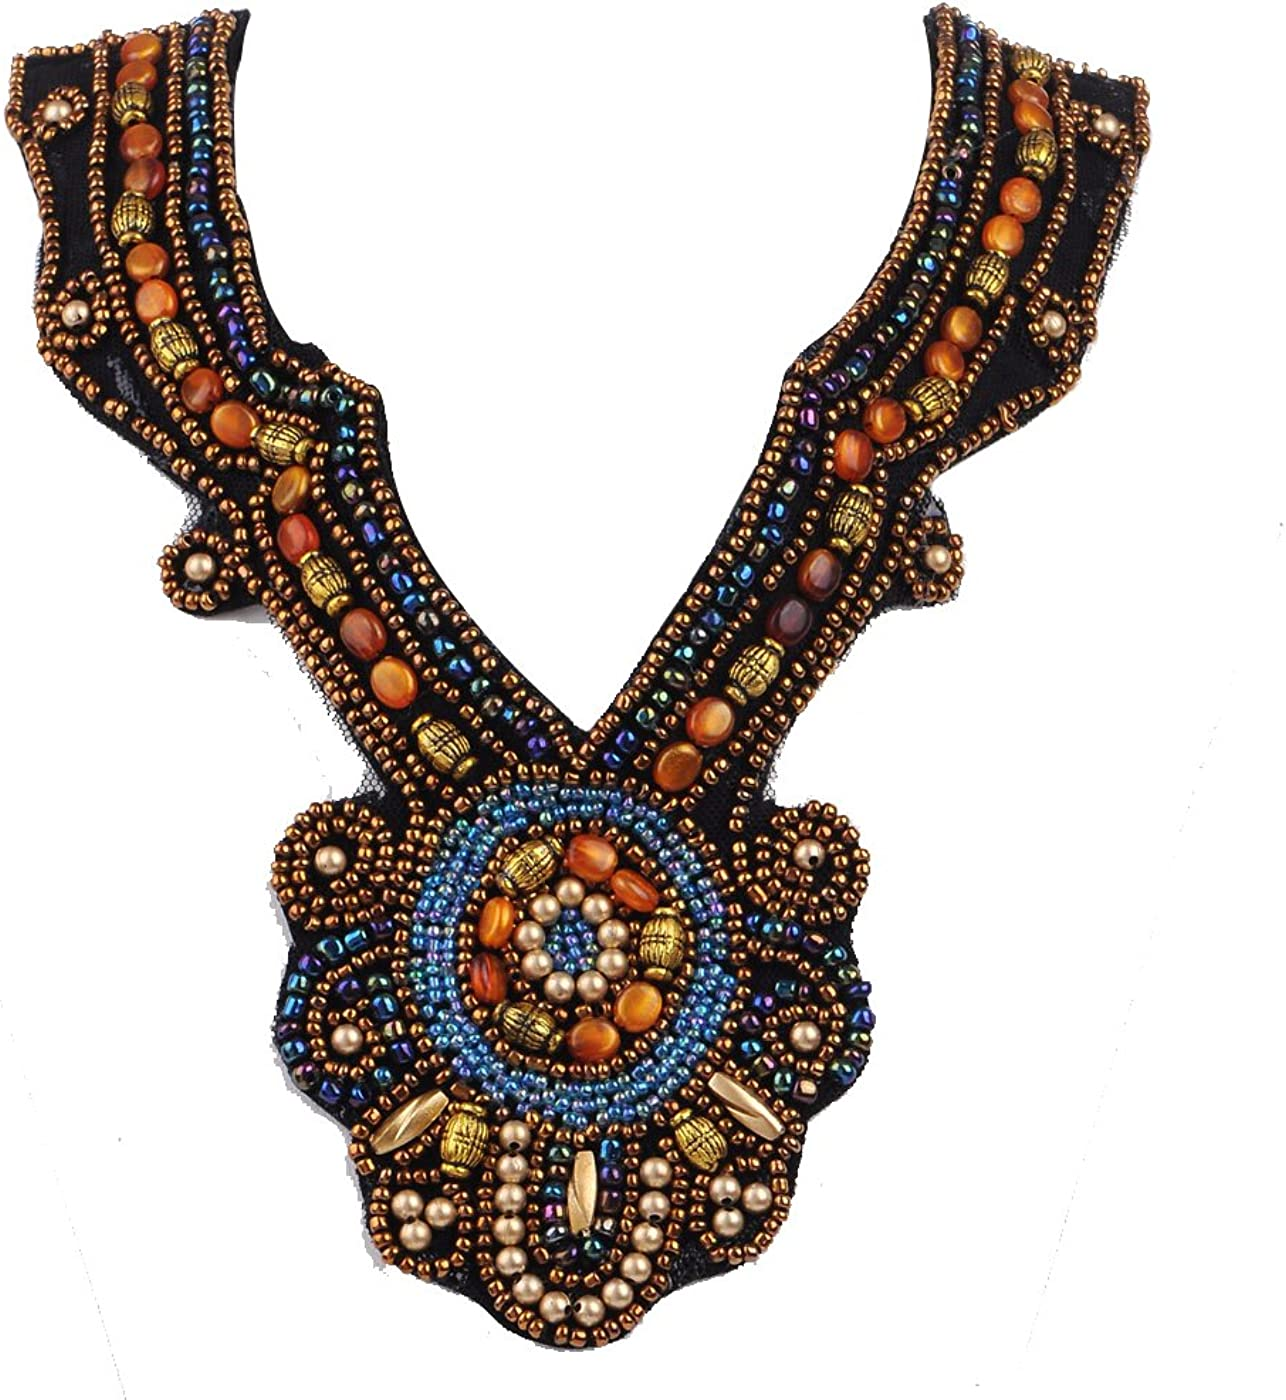 Alilang Chunky Colorful Ethnic Festival Tribal Beaded Bib Collar Choker Costume Necklace